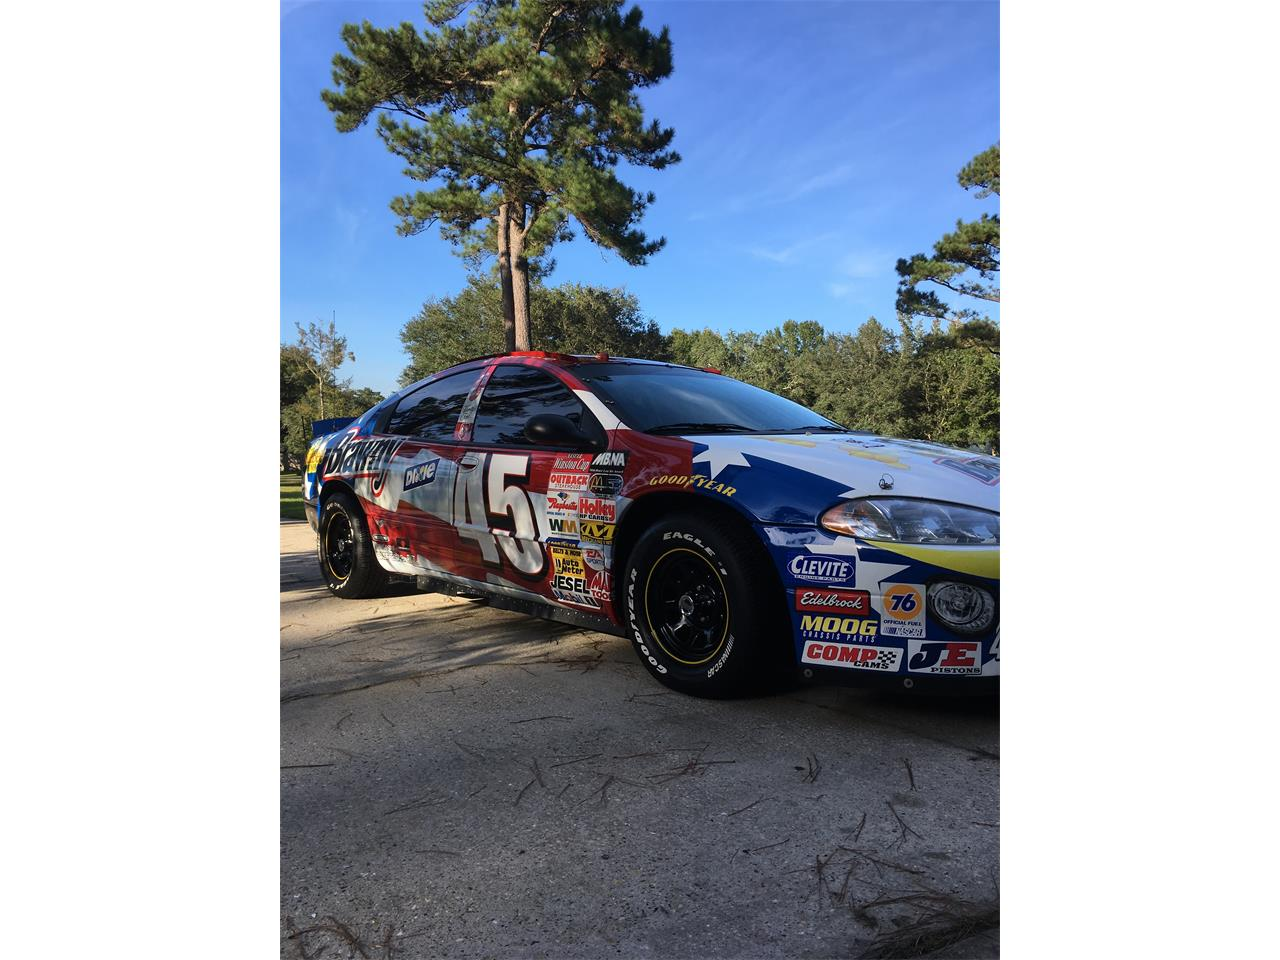 Large Picture of '04 Dodge Intrepid located in Louisiana - $5,000.00 Offered by a Private Seller - FSHI